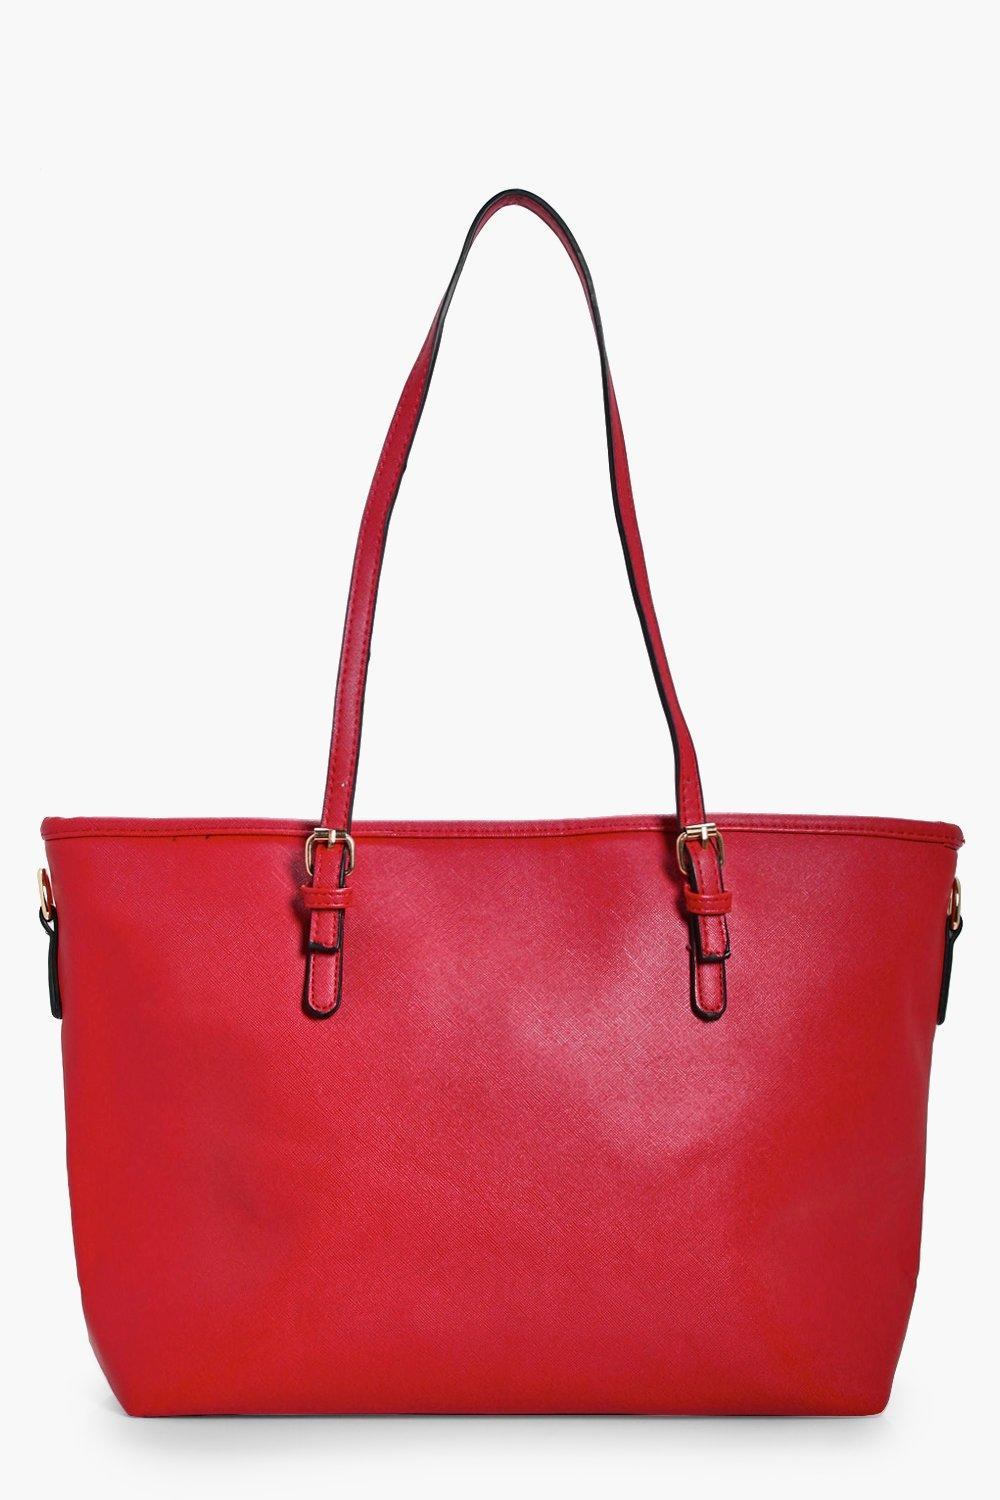 Buckle Detail Shopper Tote - red - Millie Buckle D